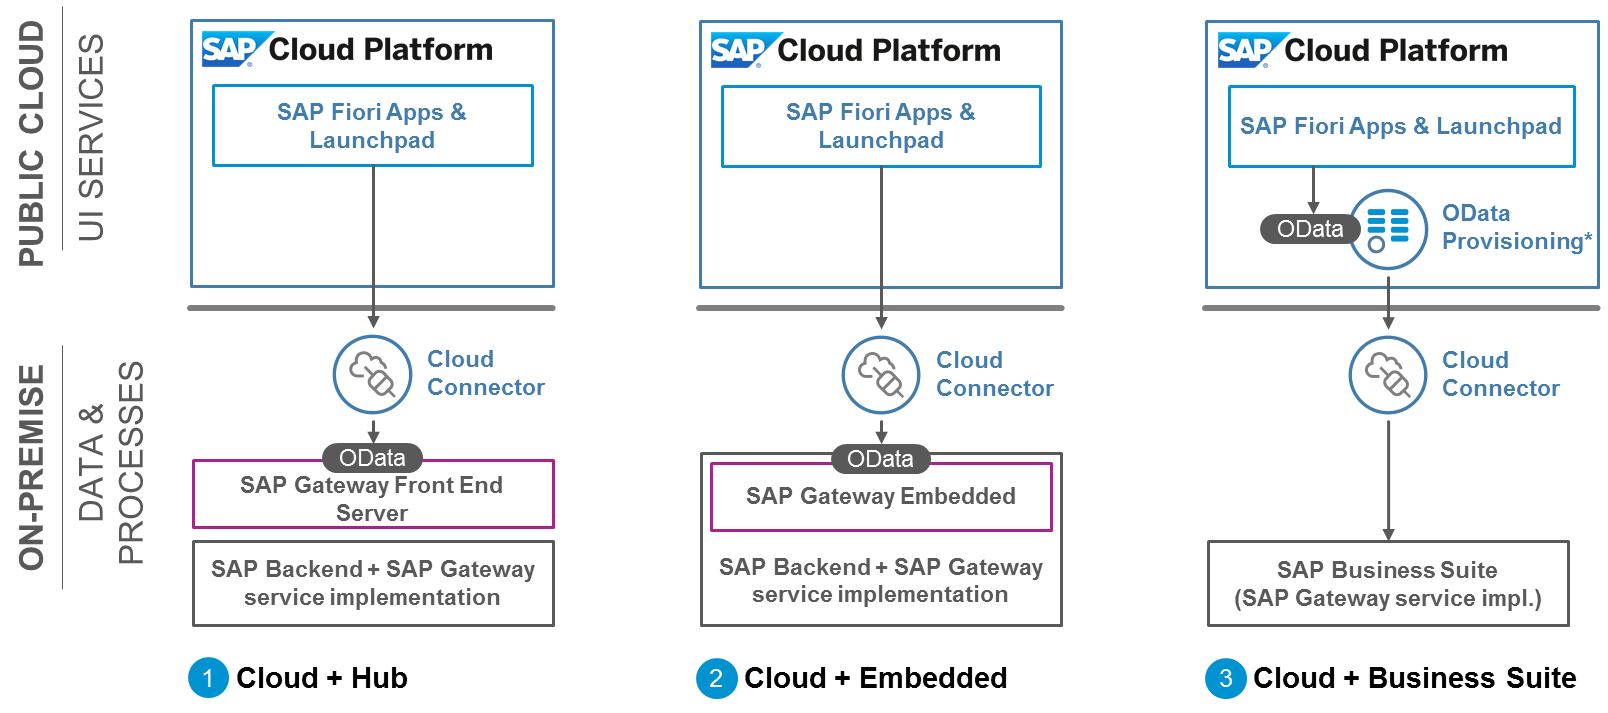 Connecting Sap Fiori Cloud App Approve Purchase Orders To